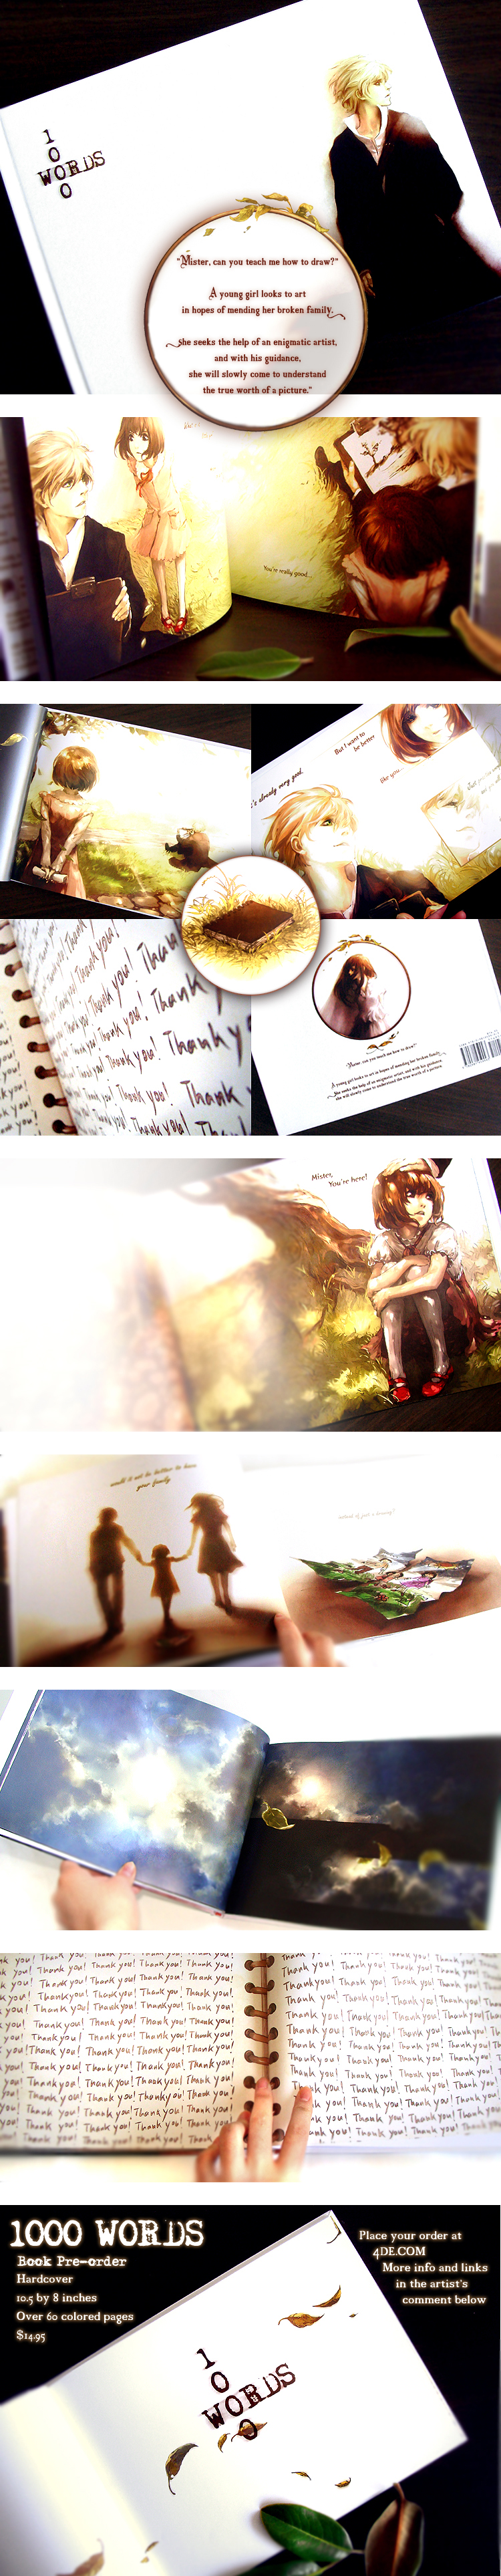 1000 WORDS Book Pre-order w/ photos by yuumei